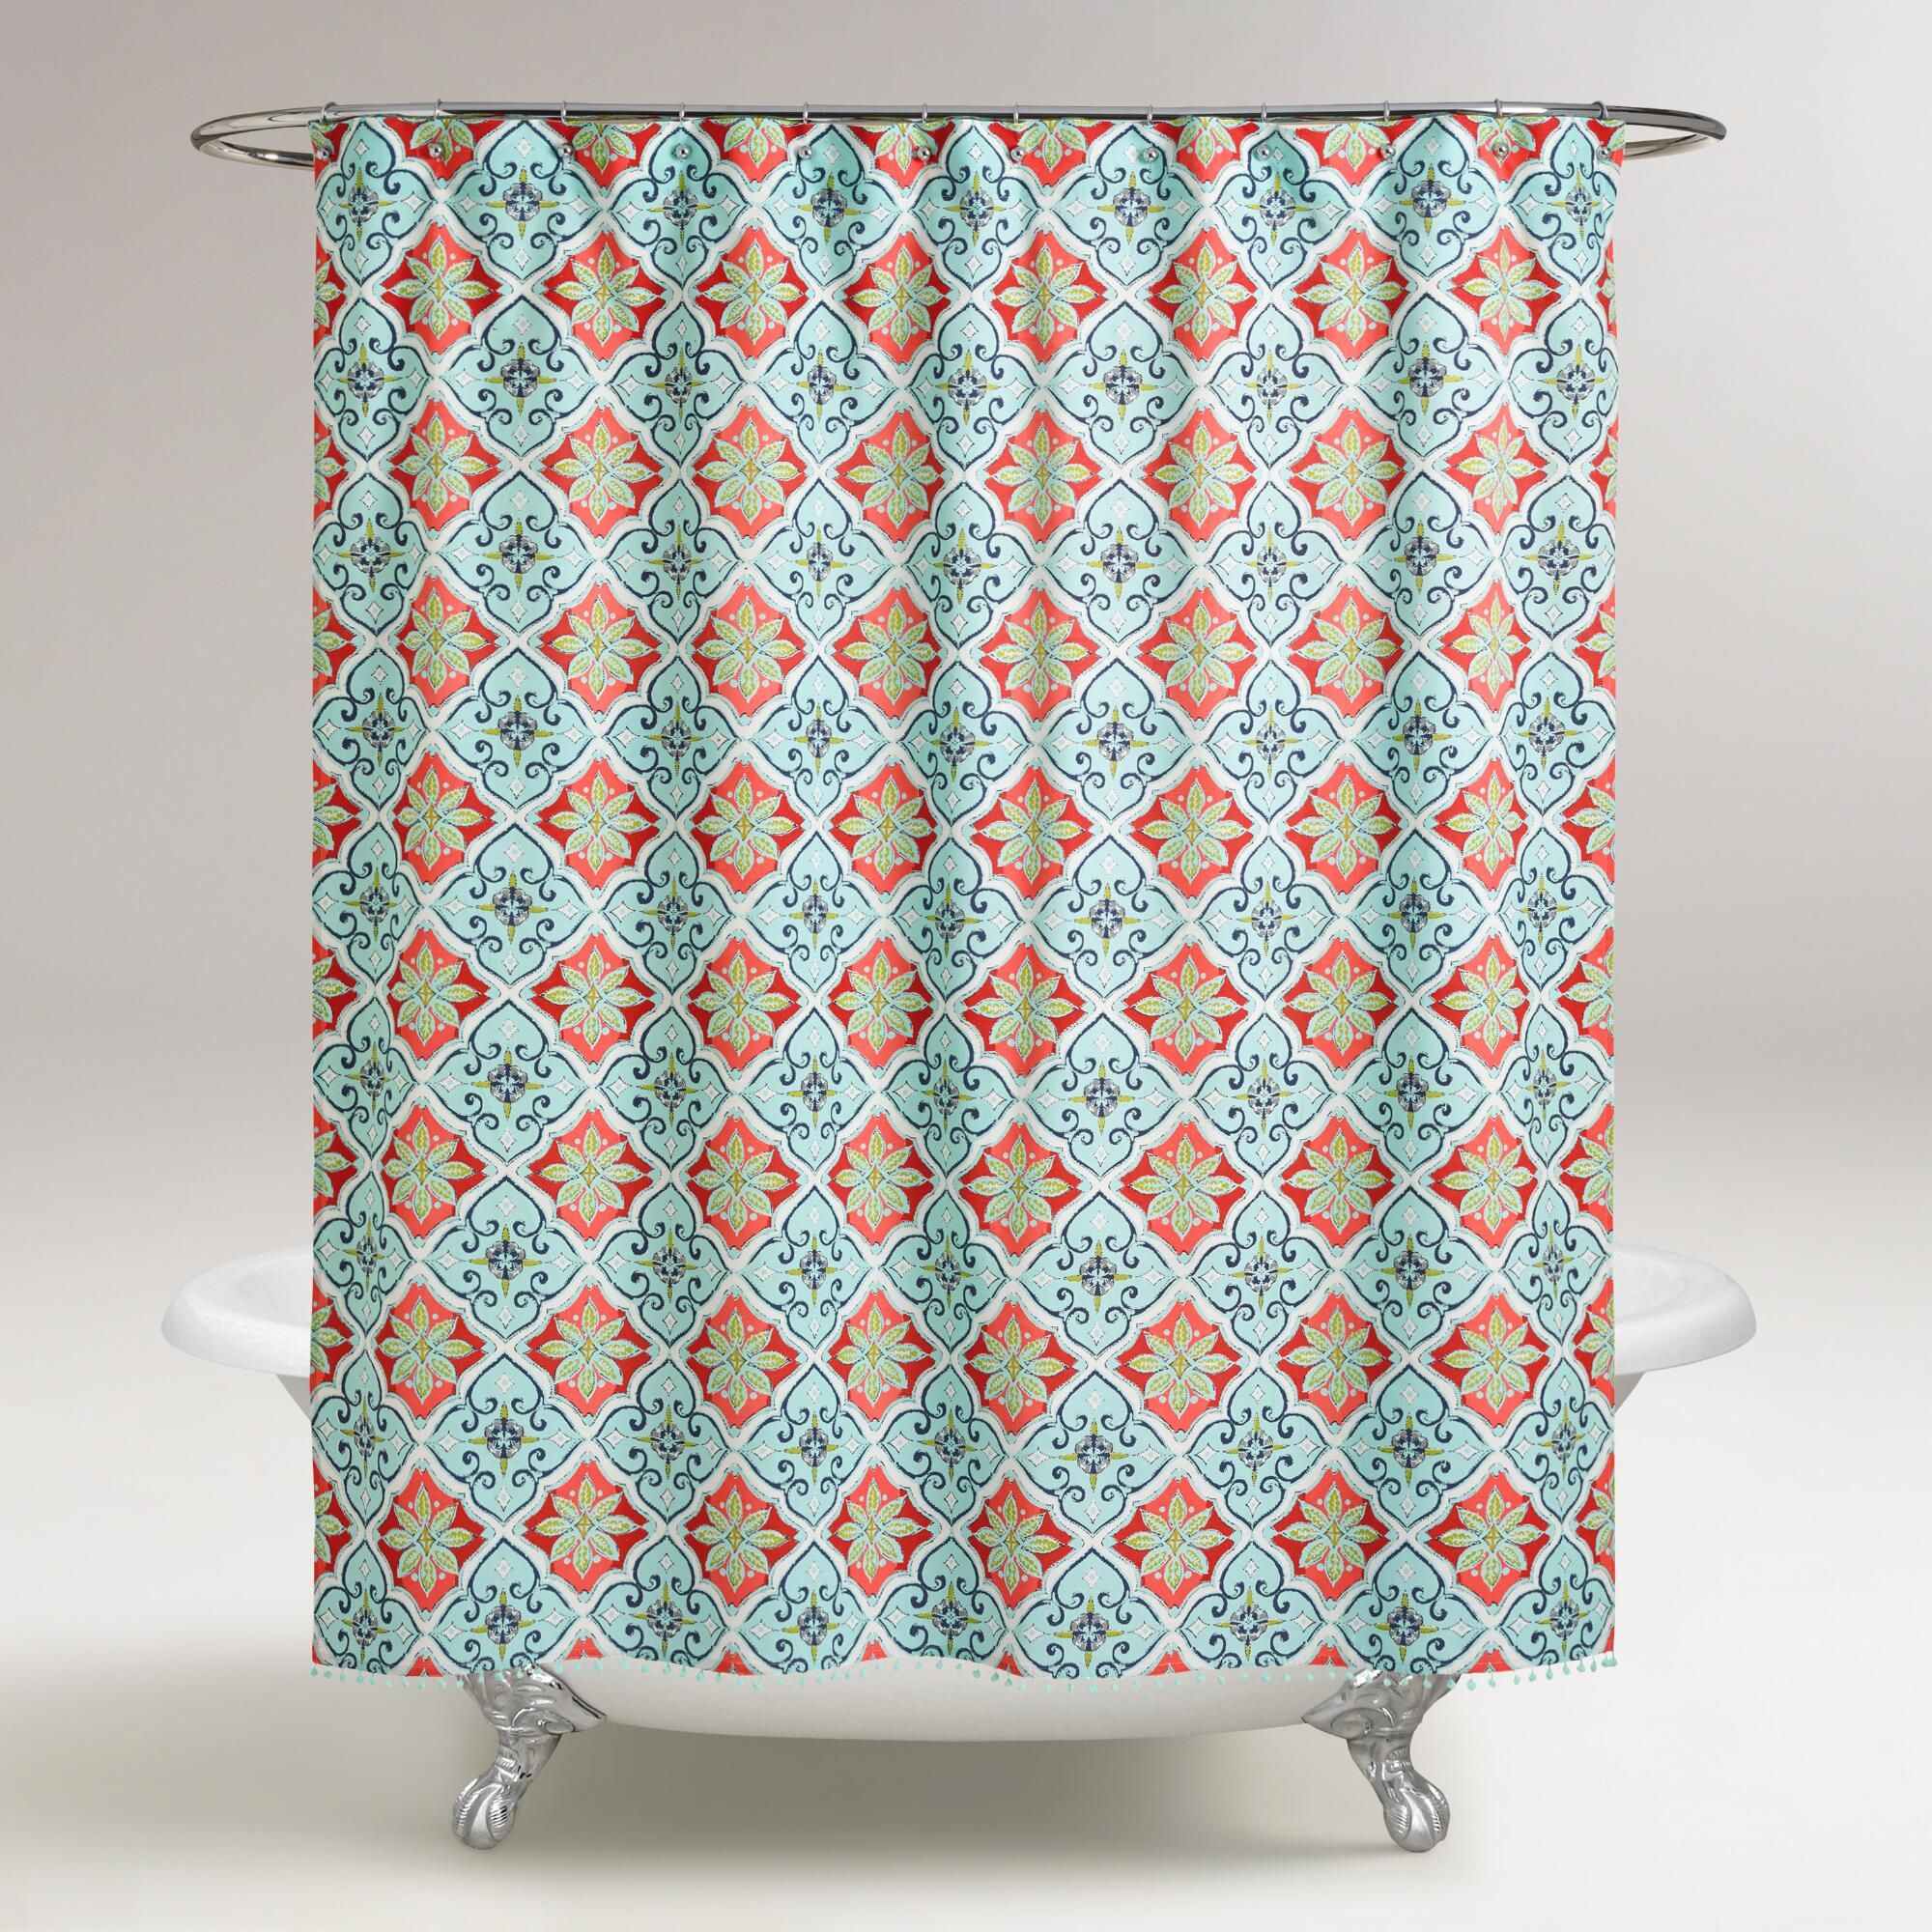 In Coral Aqua And Blue Our Shower Curtain Lends Cool Toned Vibrancy To Your Bathroom Decor With A Moroccan Inspired Tile Design